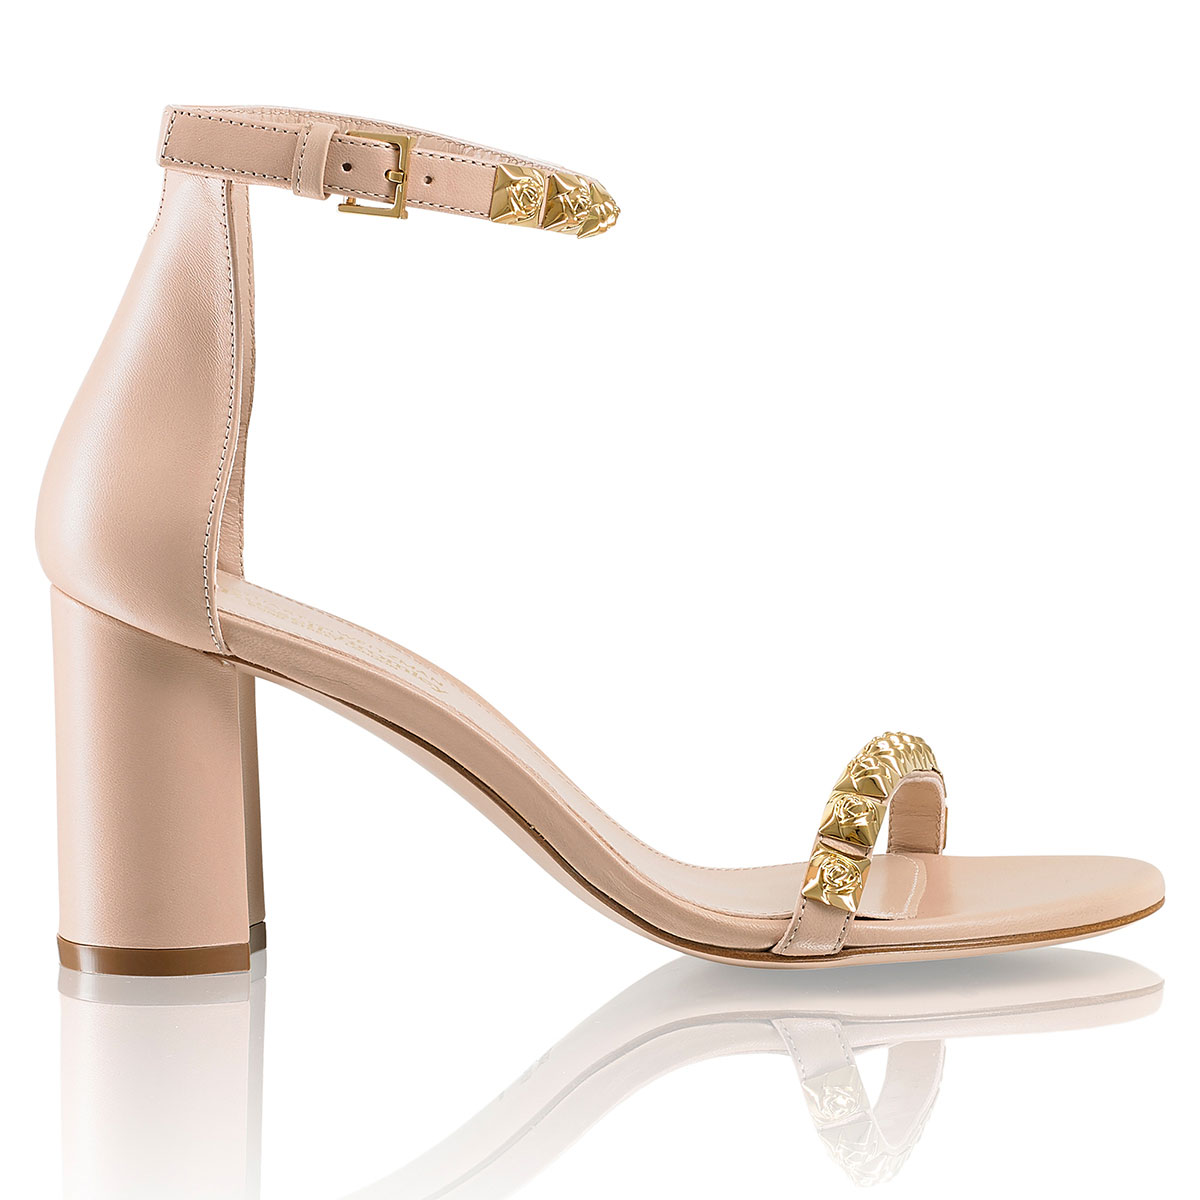 Russell And Bromley ROSEMARIE Block Heel Sandal